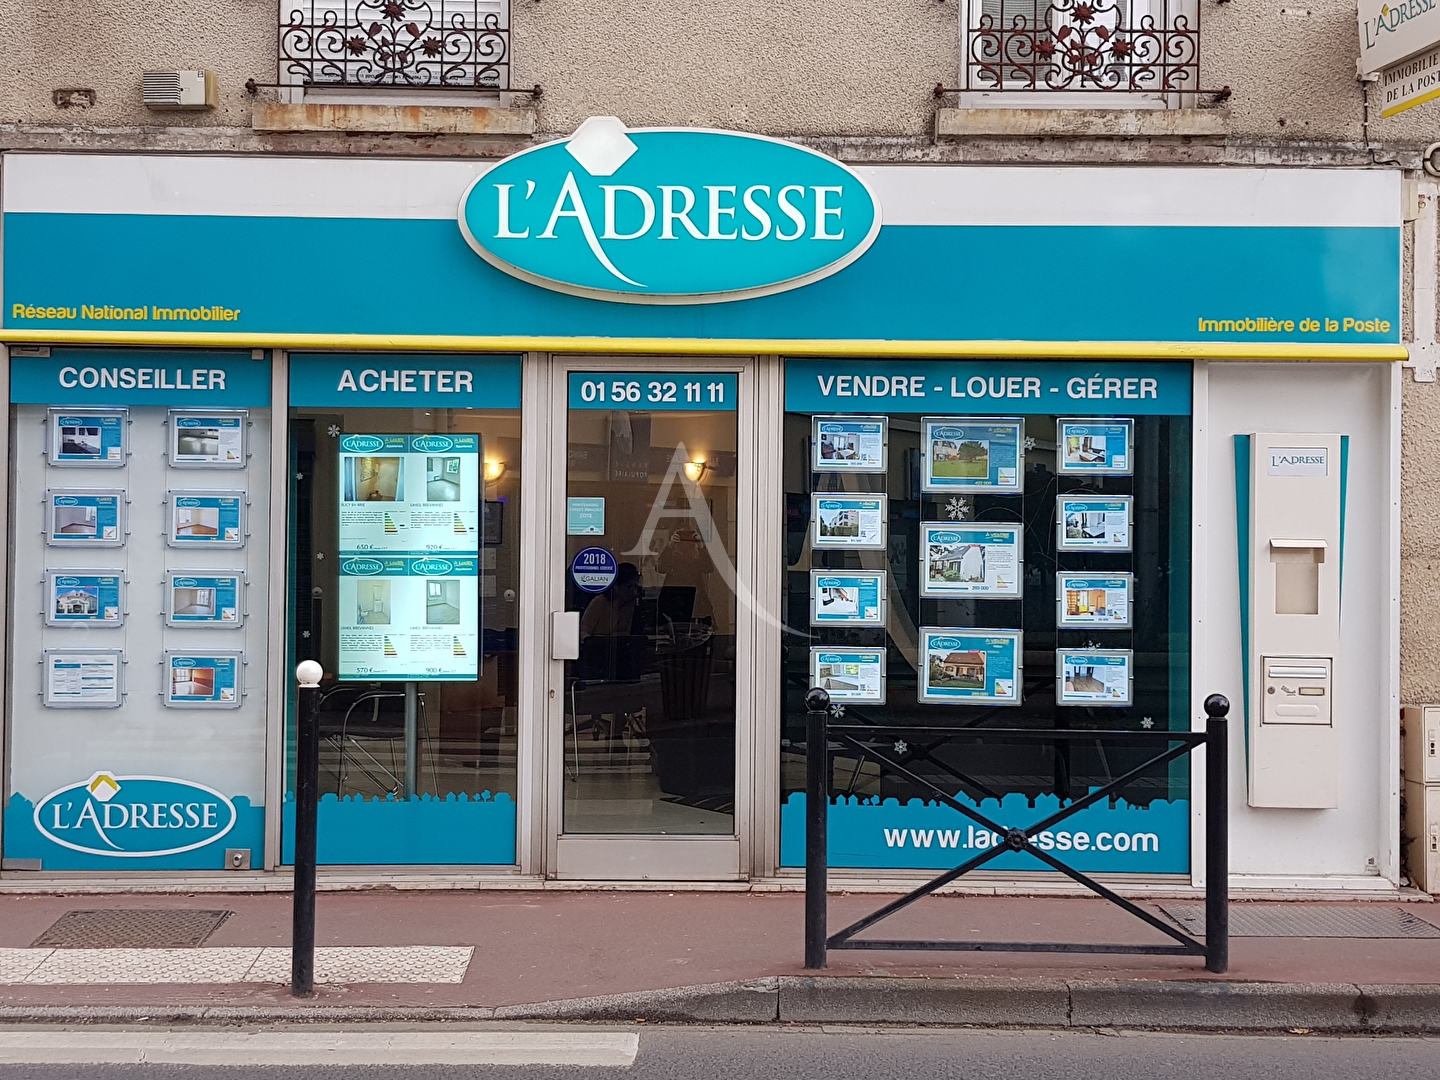 L'ADRESSE - Limeil-brevannes (94450)